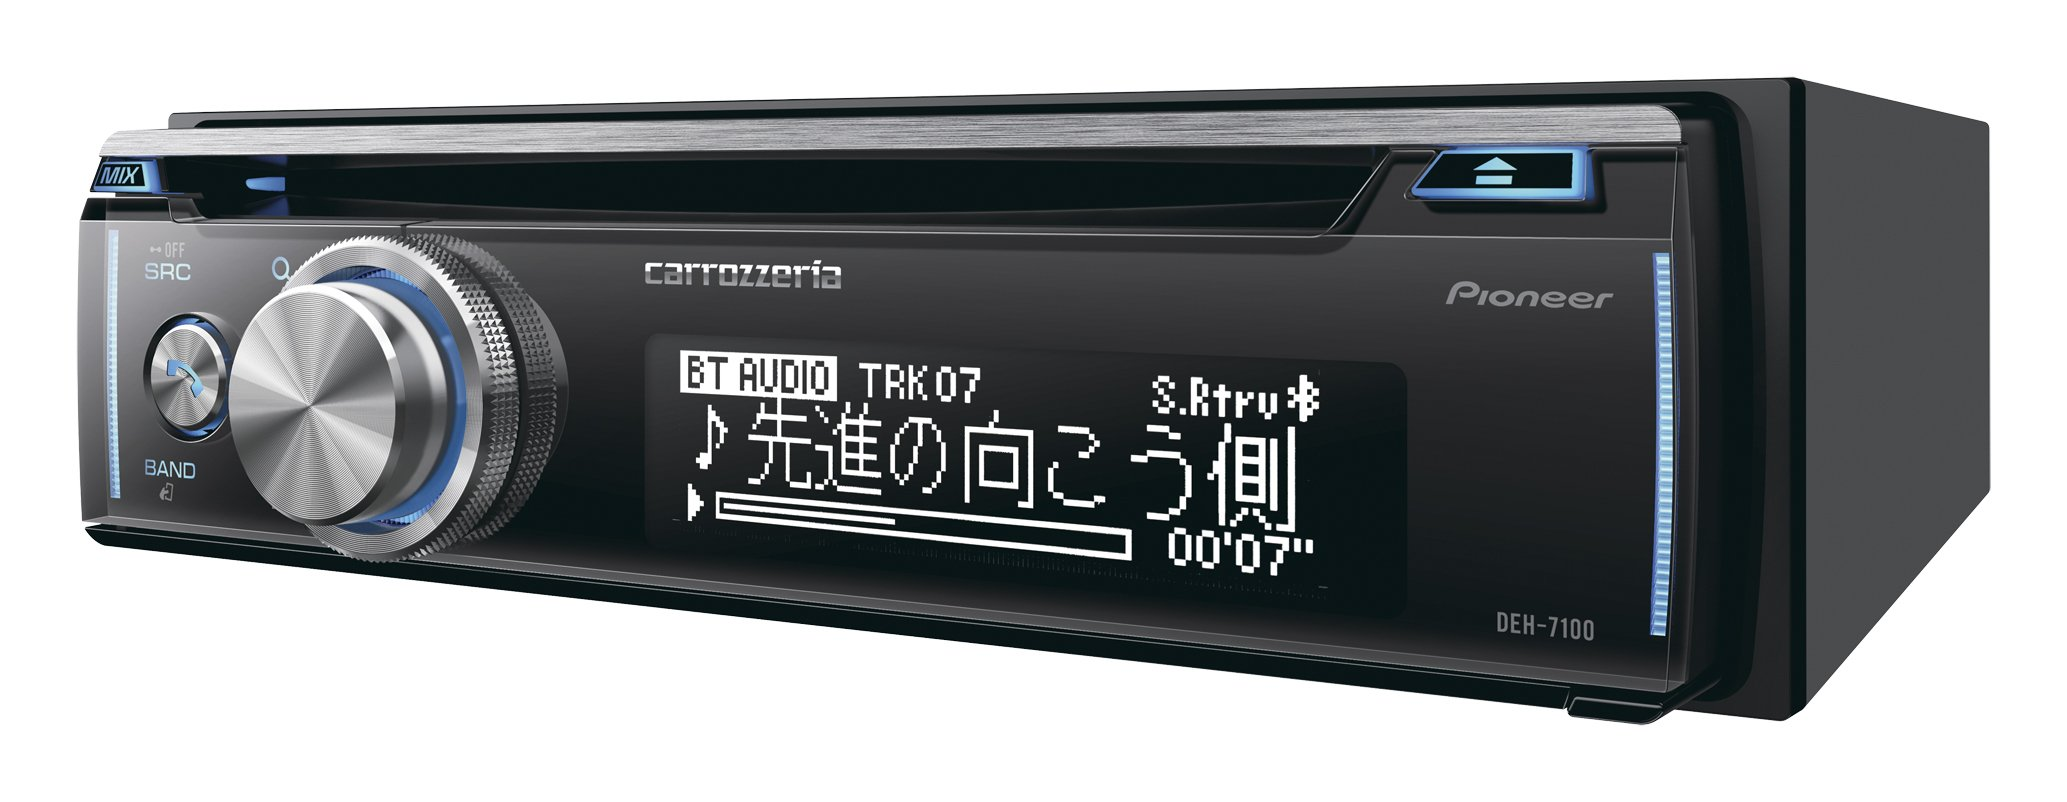 Pioneer Carrozzeria DEH-7100 car audio 1D main unit CD USB Bluetooth SD Sound(Japan Domestic genuine products) by Pioneer